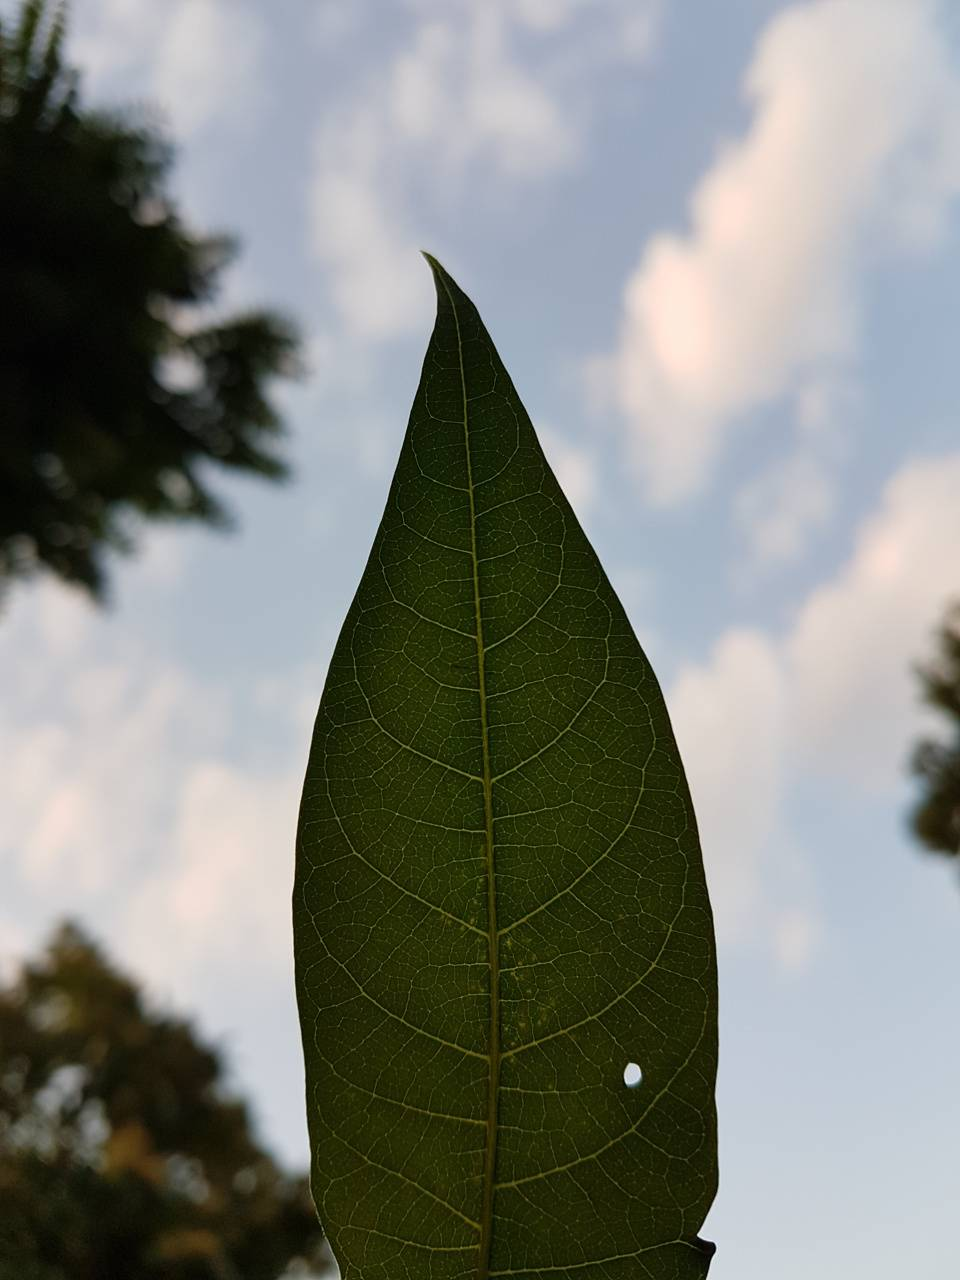 Leaf and the sky